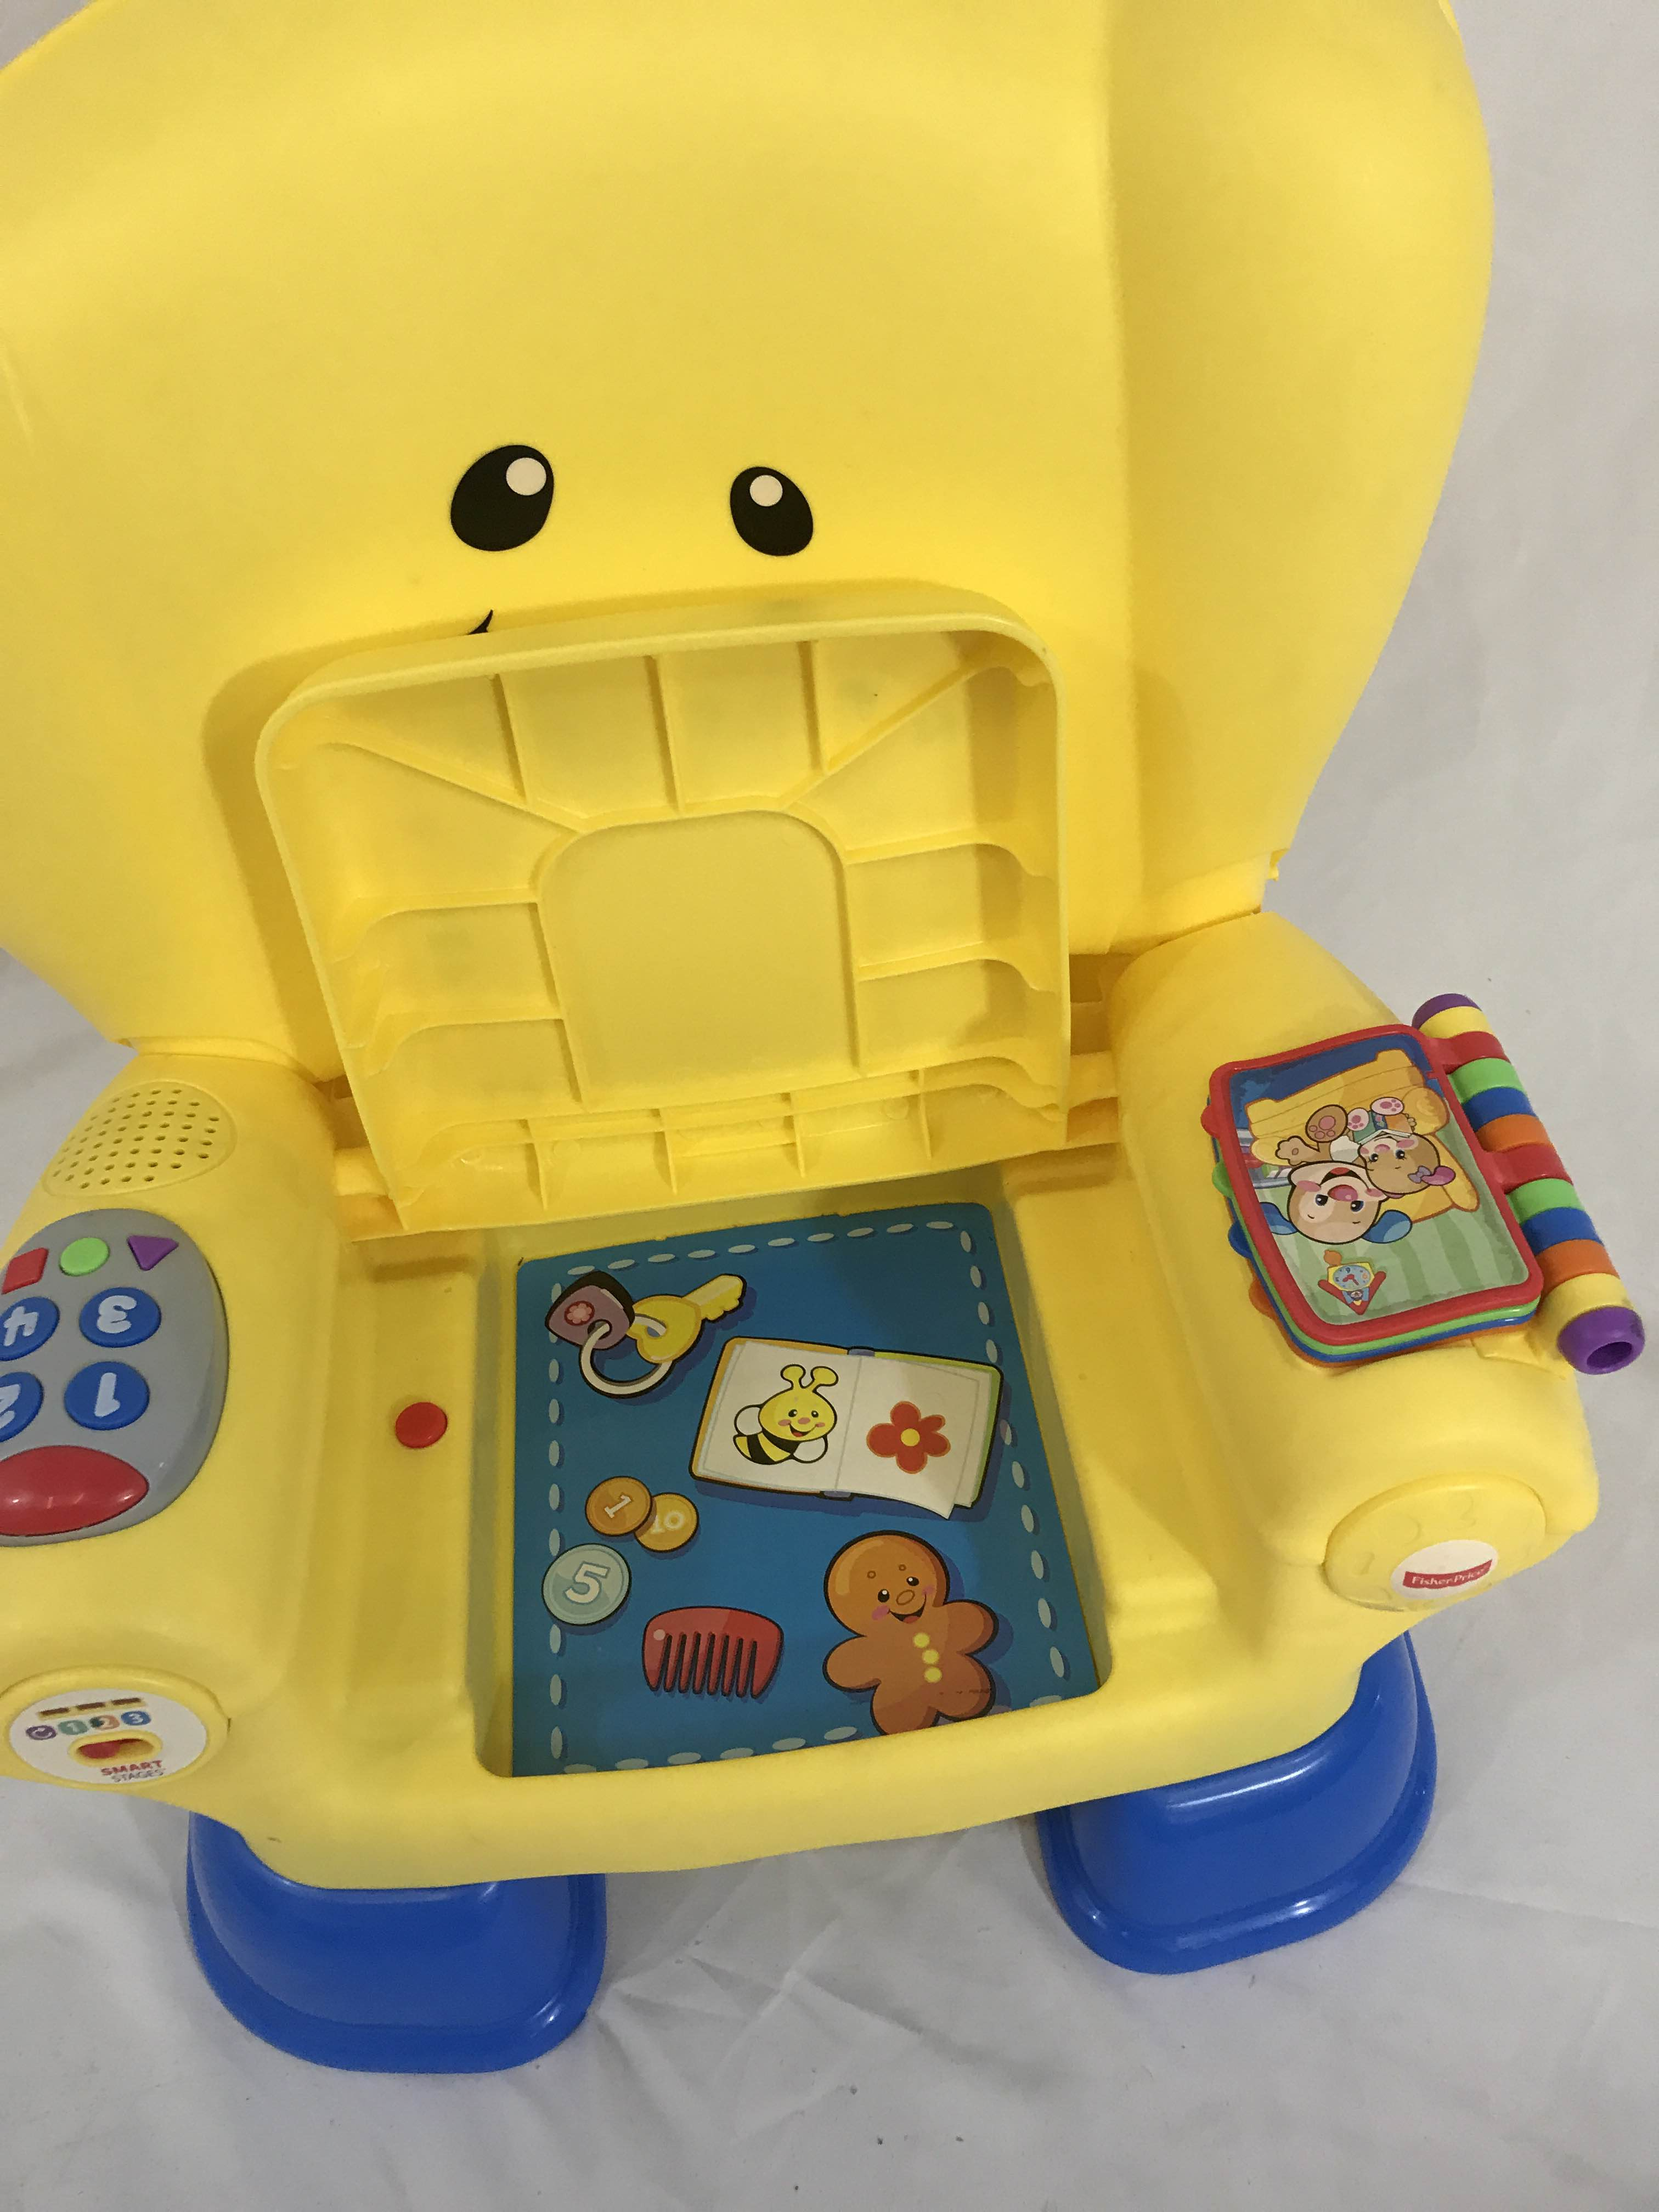 Fisher price smart stages chair - Fisher Price Smart Stages Chair